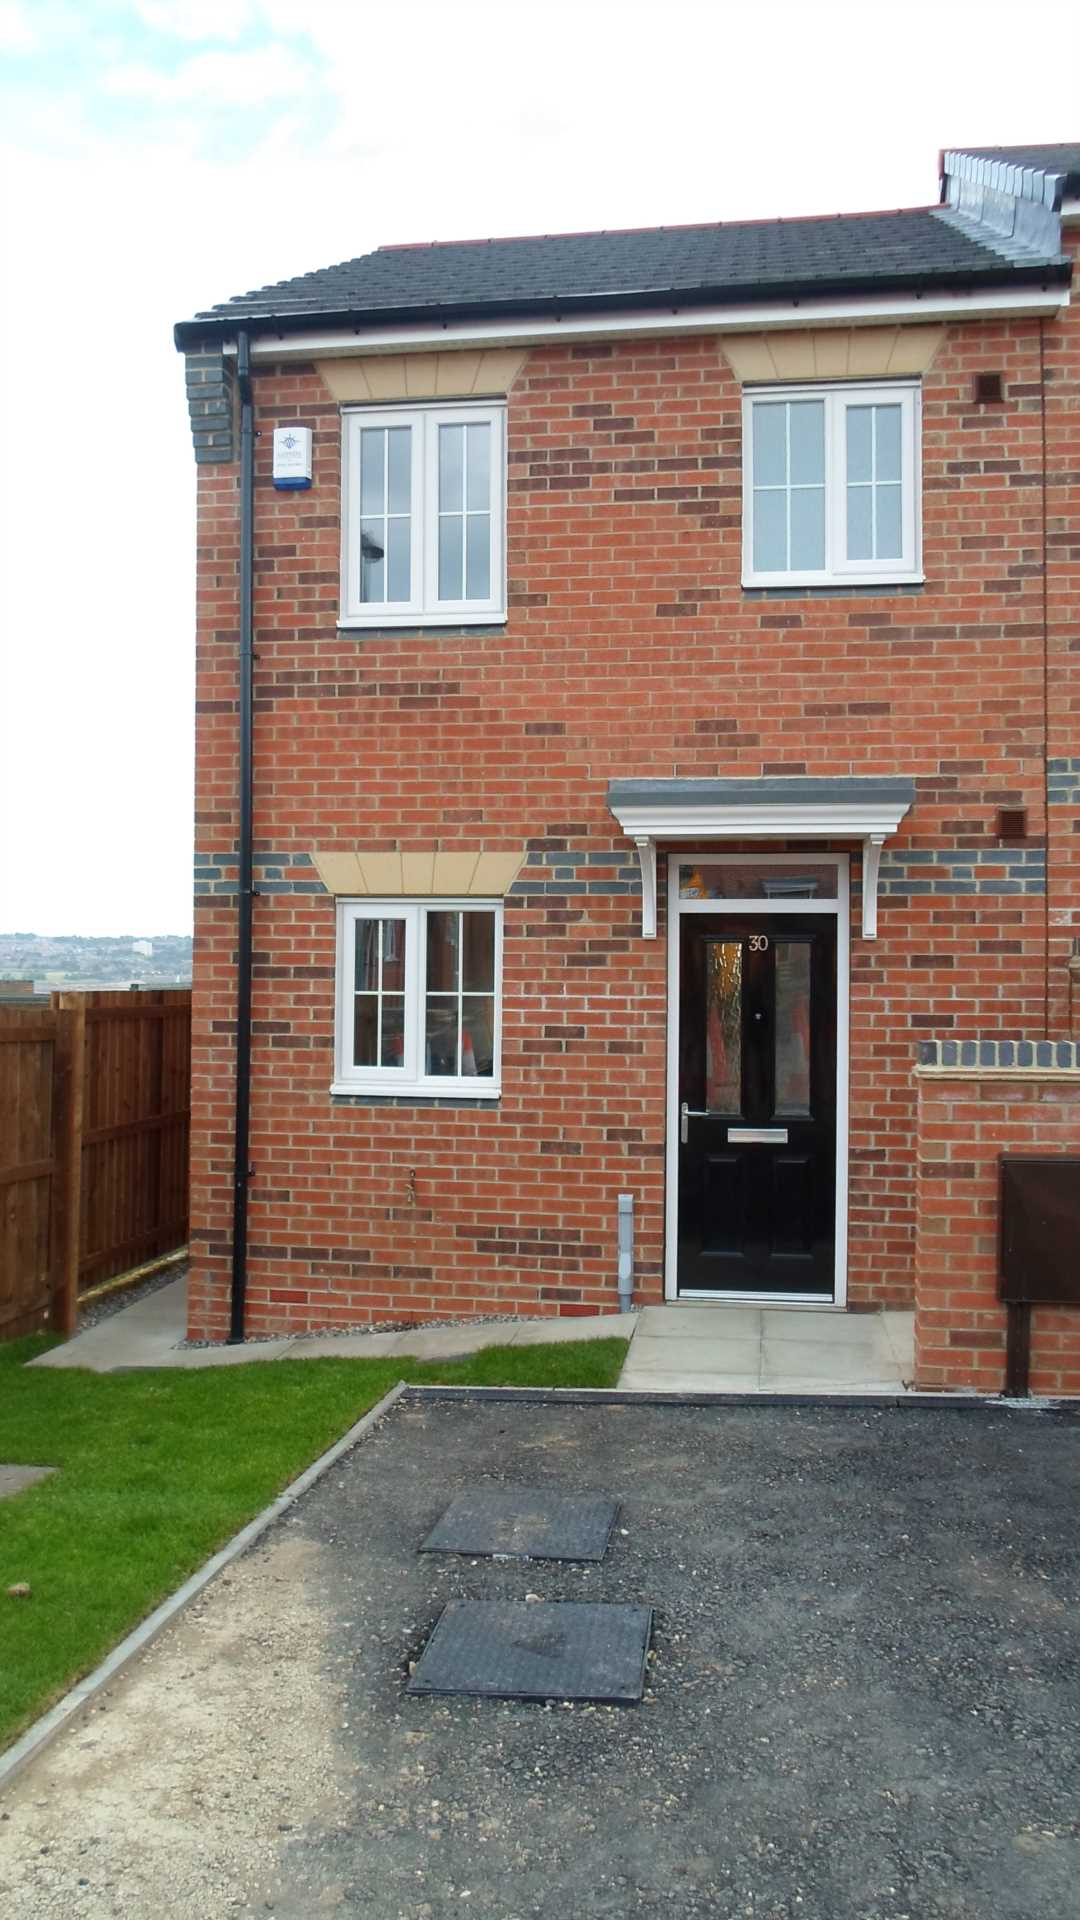 2 Bedroom House, Whitewell Road, Blaydon